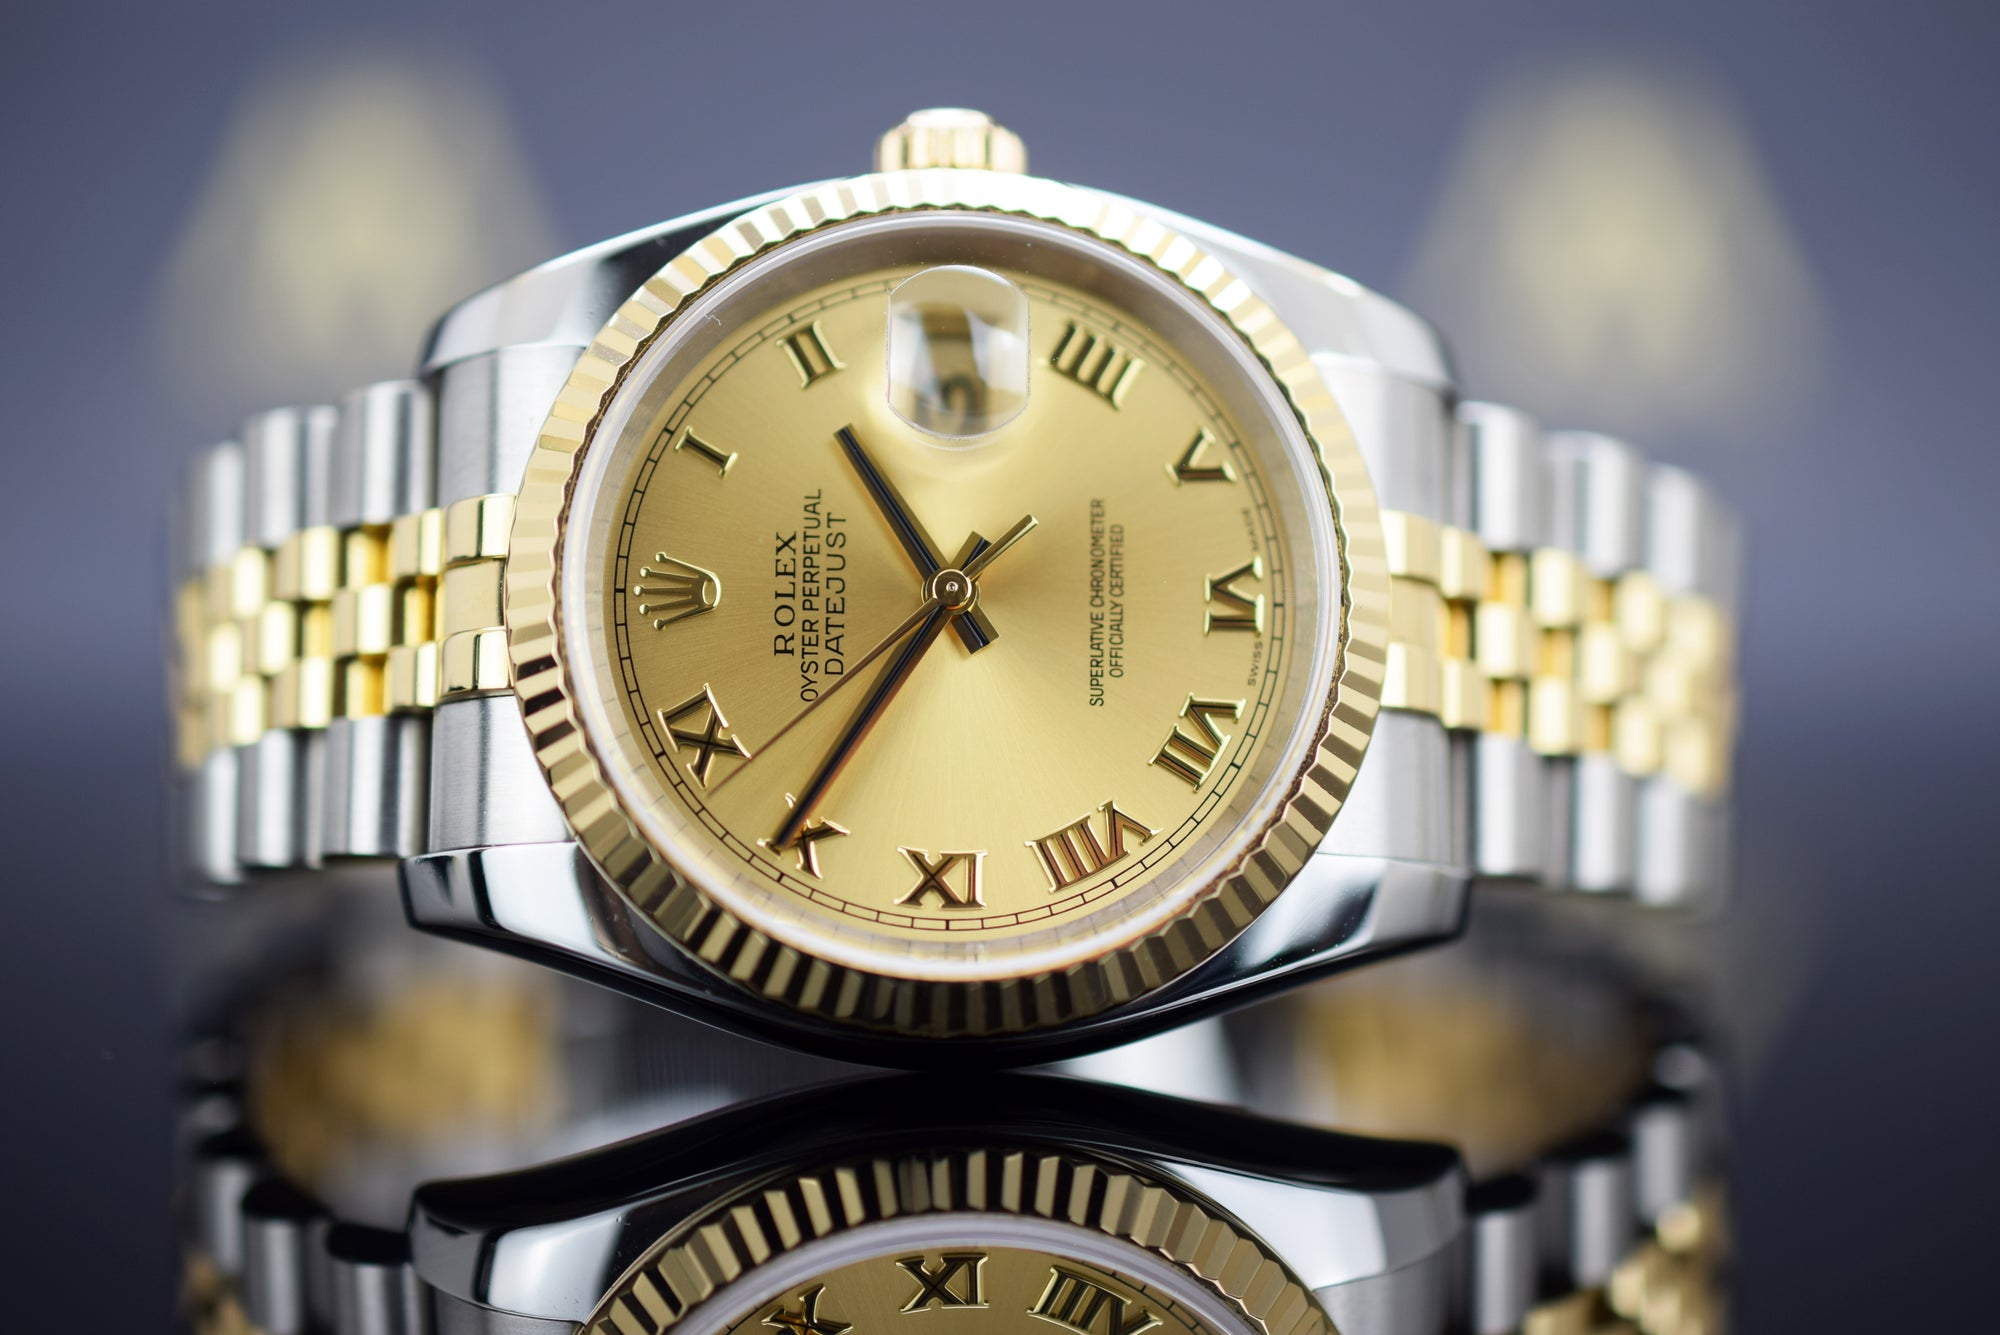 Rolex Oyster Perpetual Datejust 36mm - Aus 2004